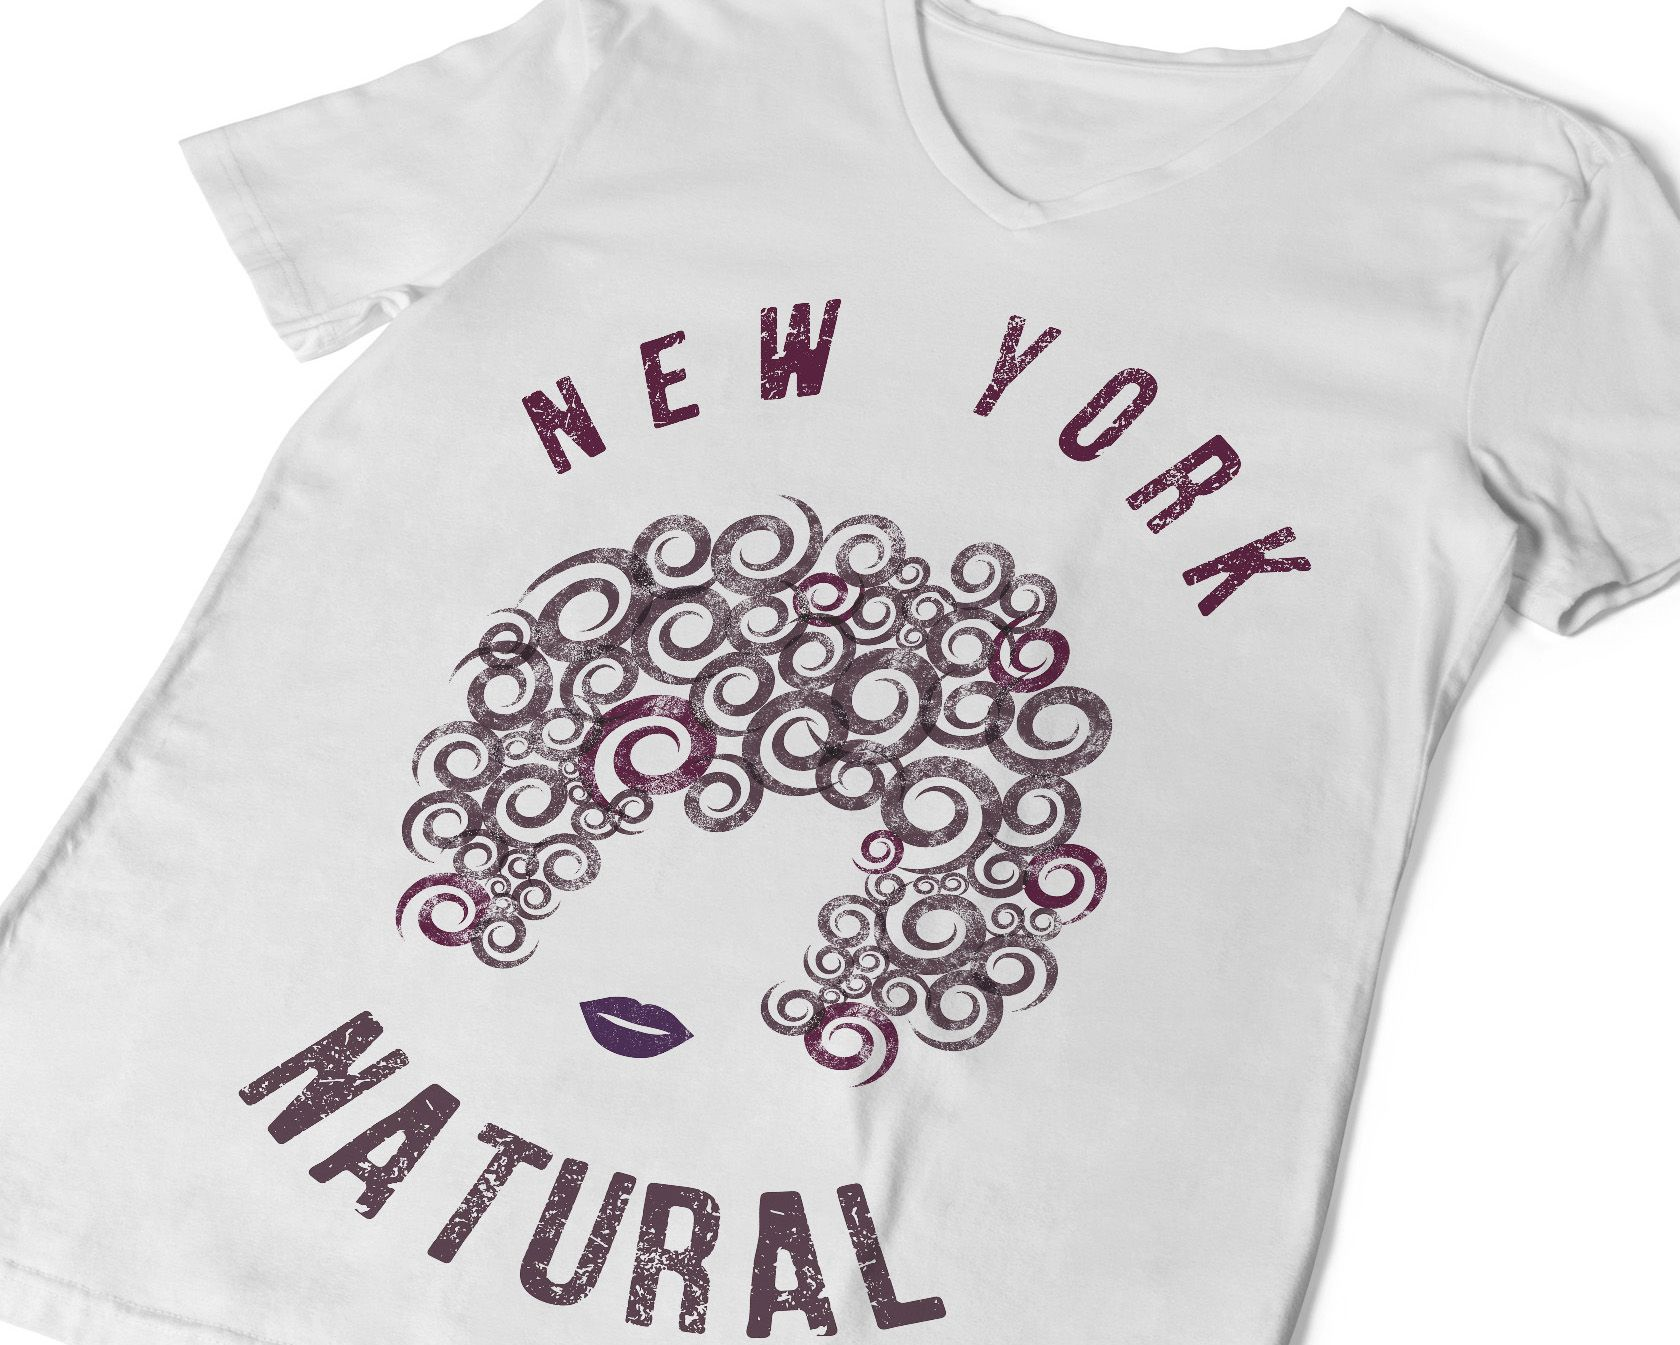 073711446 Natural Hair T-shirt Choose Your City or State Distressed Tee Custom ...